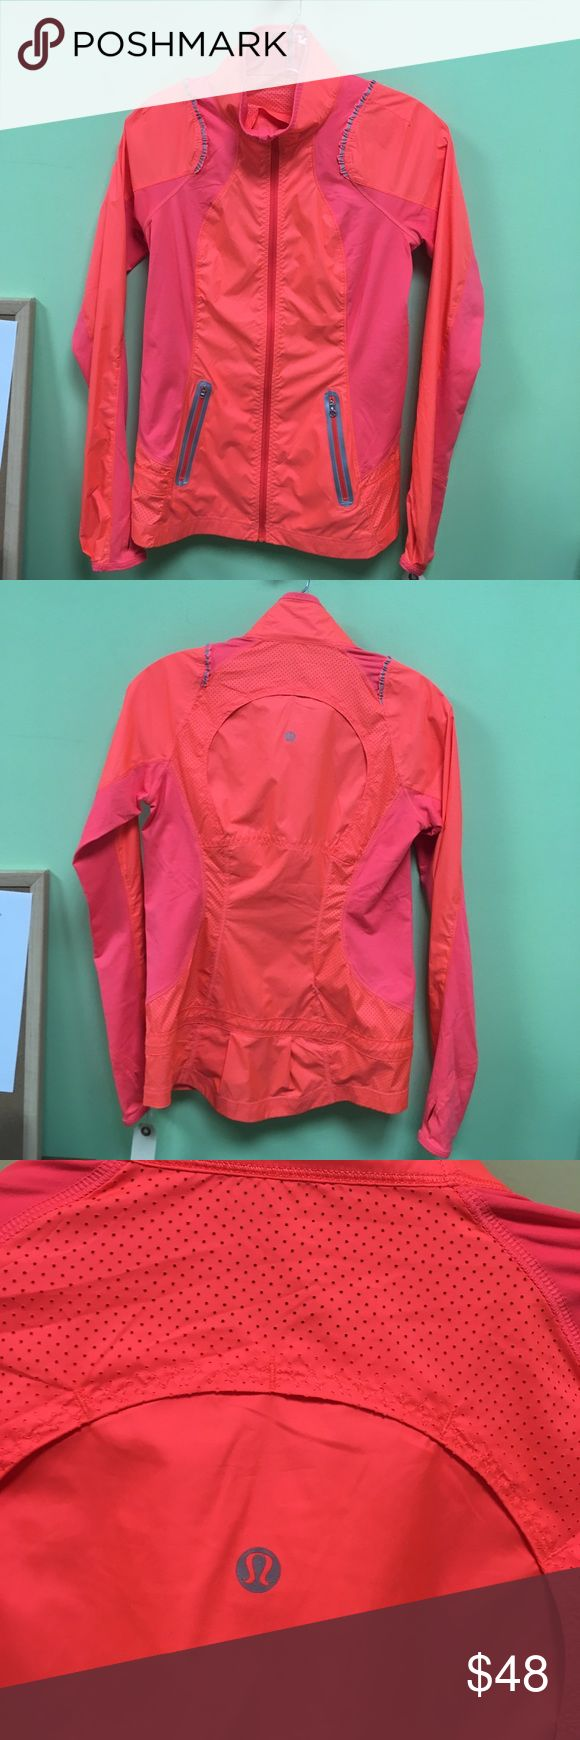 Lululemon neon orange windbreaker sz 4 50860 Orange zip up jacket sz 4 in excellent used condition lululemon athletica Jackets & Coats